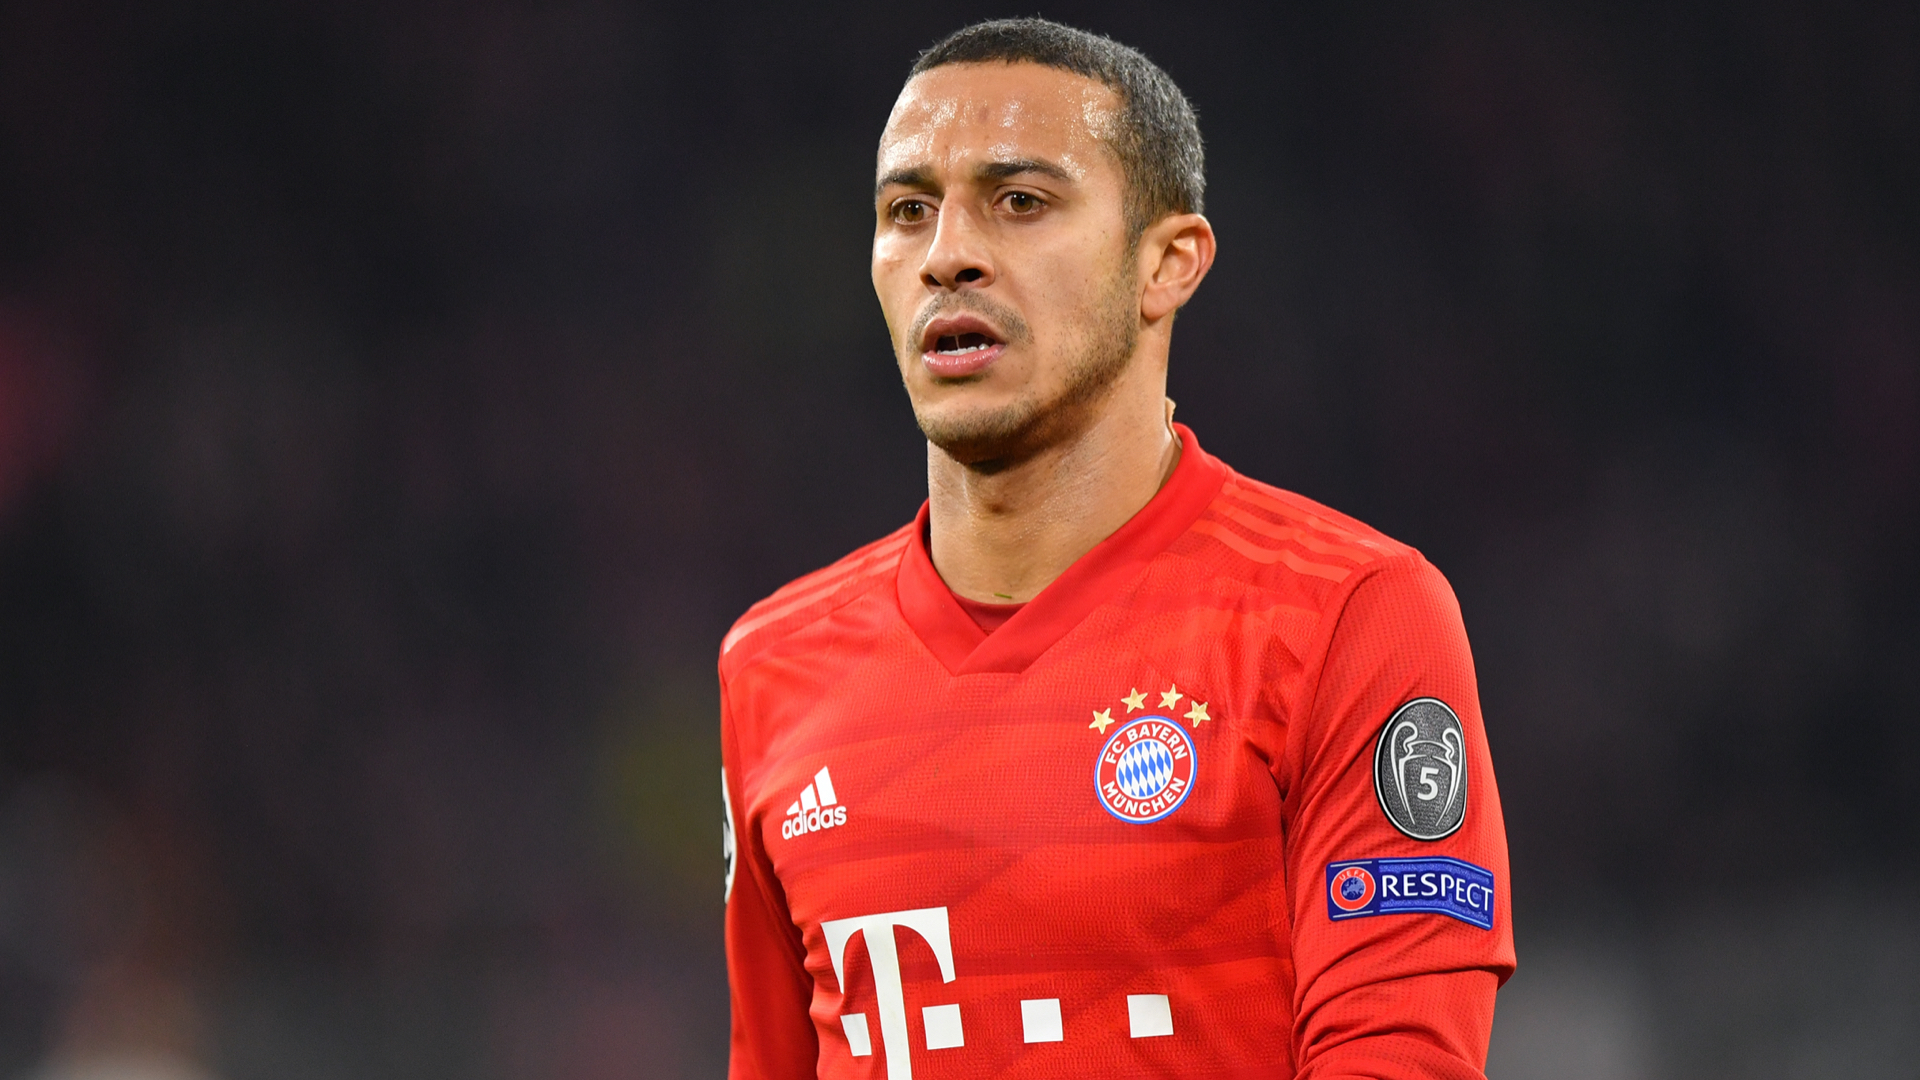 Bayern Munich hints Thiago Alcantara has agreed terms with Liverpool, Man Utd